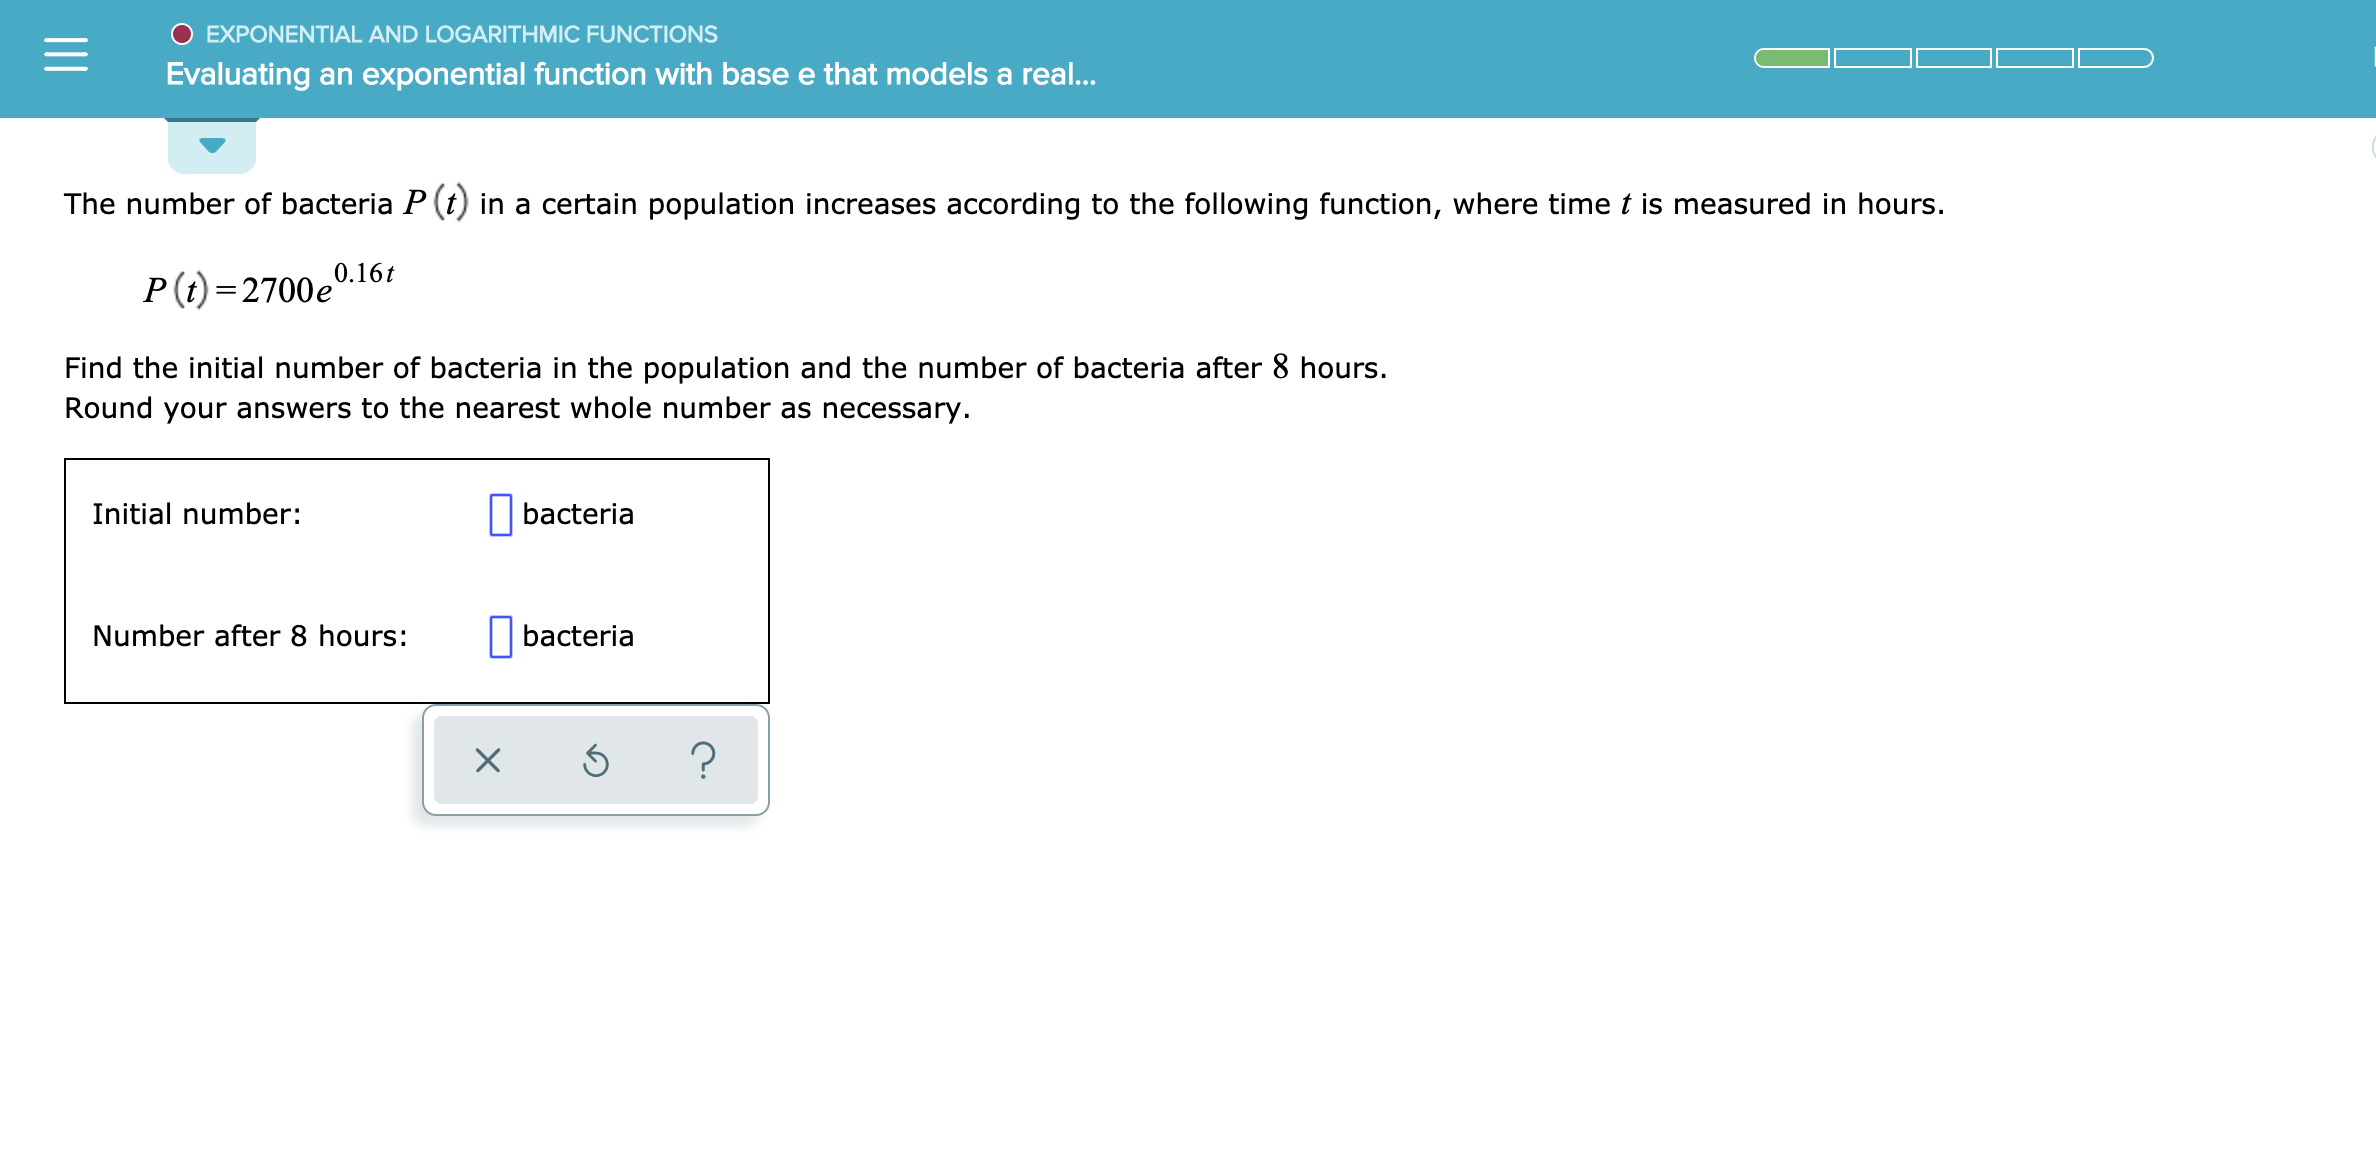 O EXPONENTIAL AND LOGARITHMIC FUNCTIONS Evaluating an exponential function with base e that models a rea... The number of bacteria P (t in a certain population increases according to the following function, where time t is measured in hours. 0.16t P (i) 2700e Find the initial number of bacteria in the population and the number of bacteria after 8 hours. Round your answers to the nearest whole number as necessary Initial number: bacteria Number after 8 hours: bacteria ? X